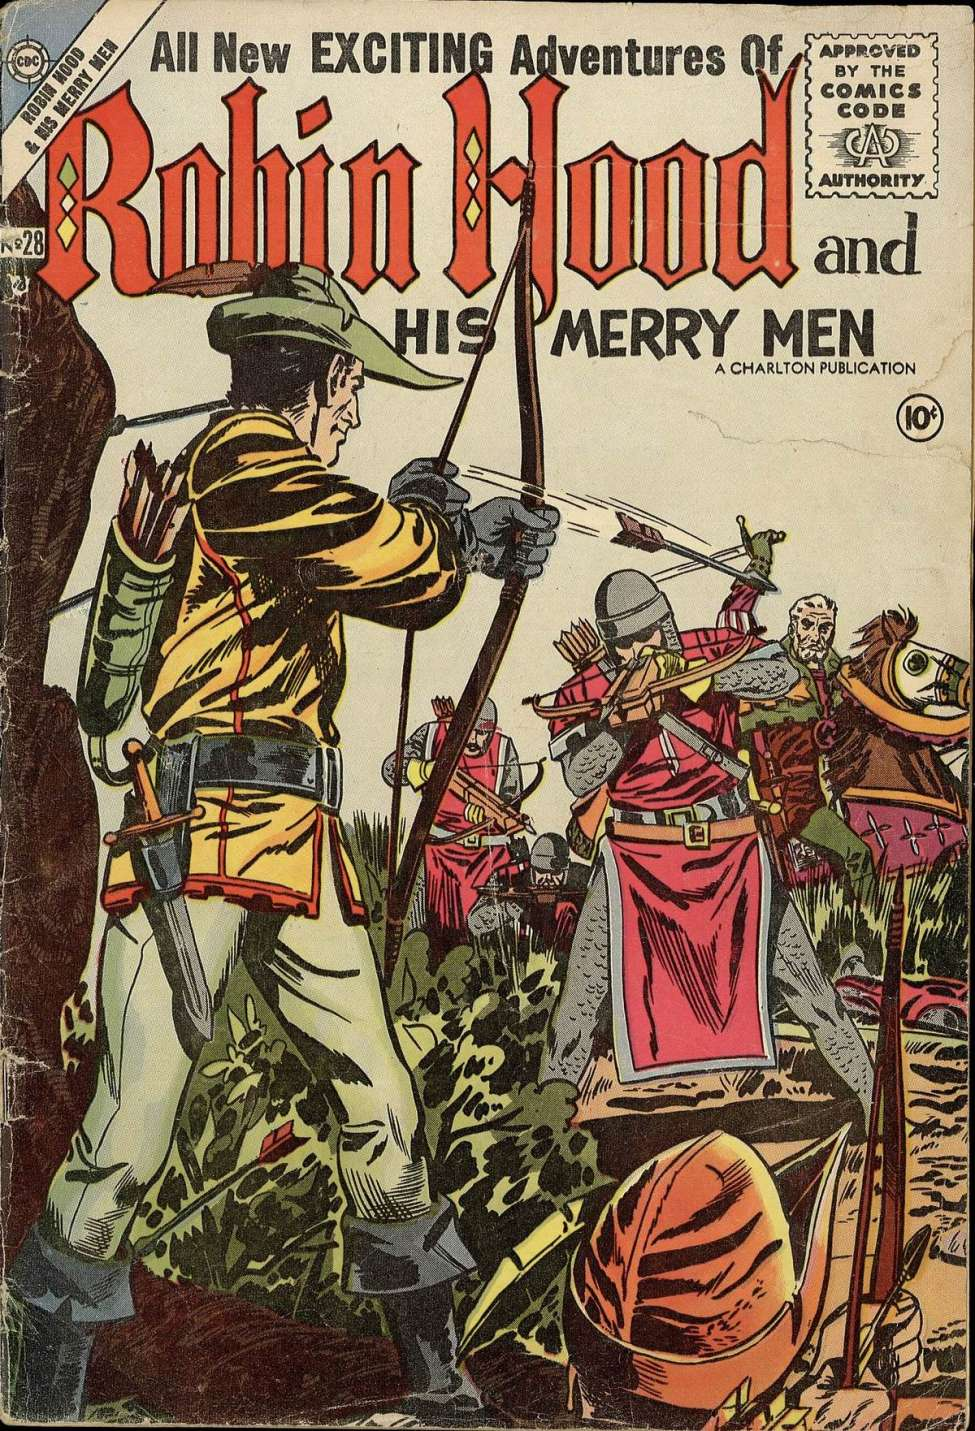 an analysis of robin hoods business operations and the merrymen Robin hood can use the swot analysis to identify where he is strong and vulnerable, where he should defend and attack his lieutenants strongly object and do not want to change the merrymen's famous motto, or tax the farmers and the townspeople that support their fight against the sheriff.